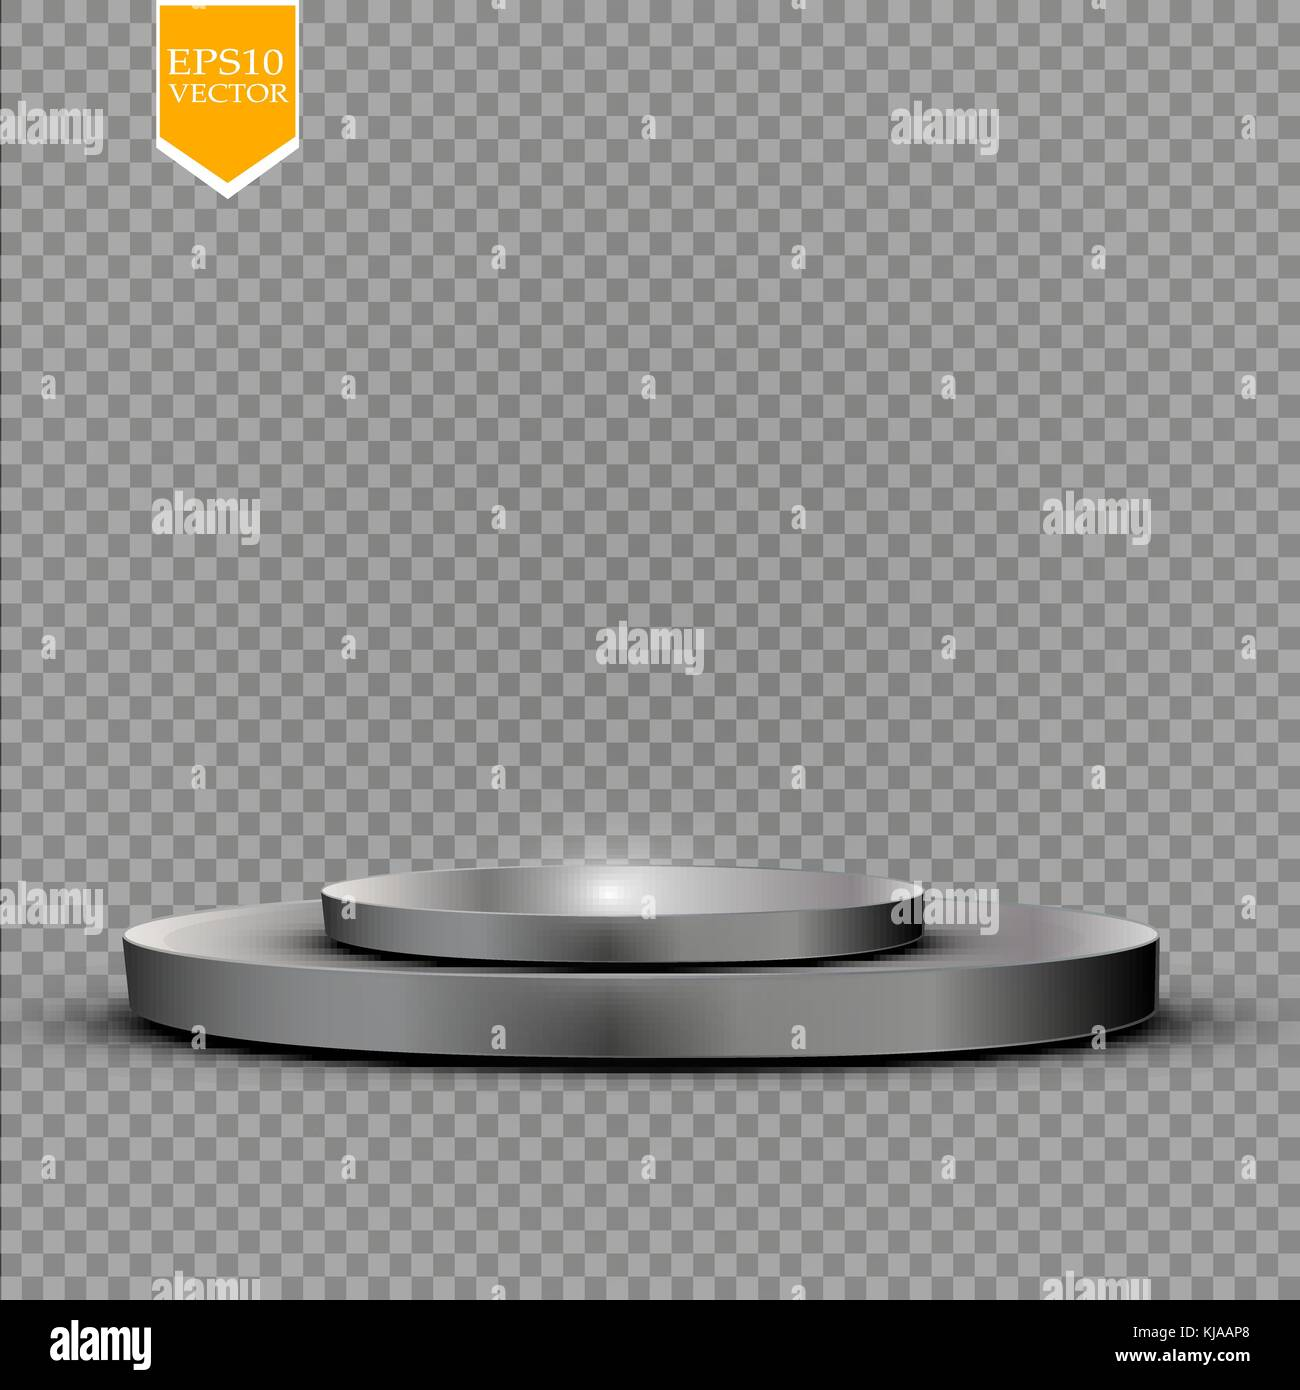 Realistic round white display podium isolated on transparent background. Perspective circle plinth, pillar, pedestal. Stock Vector